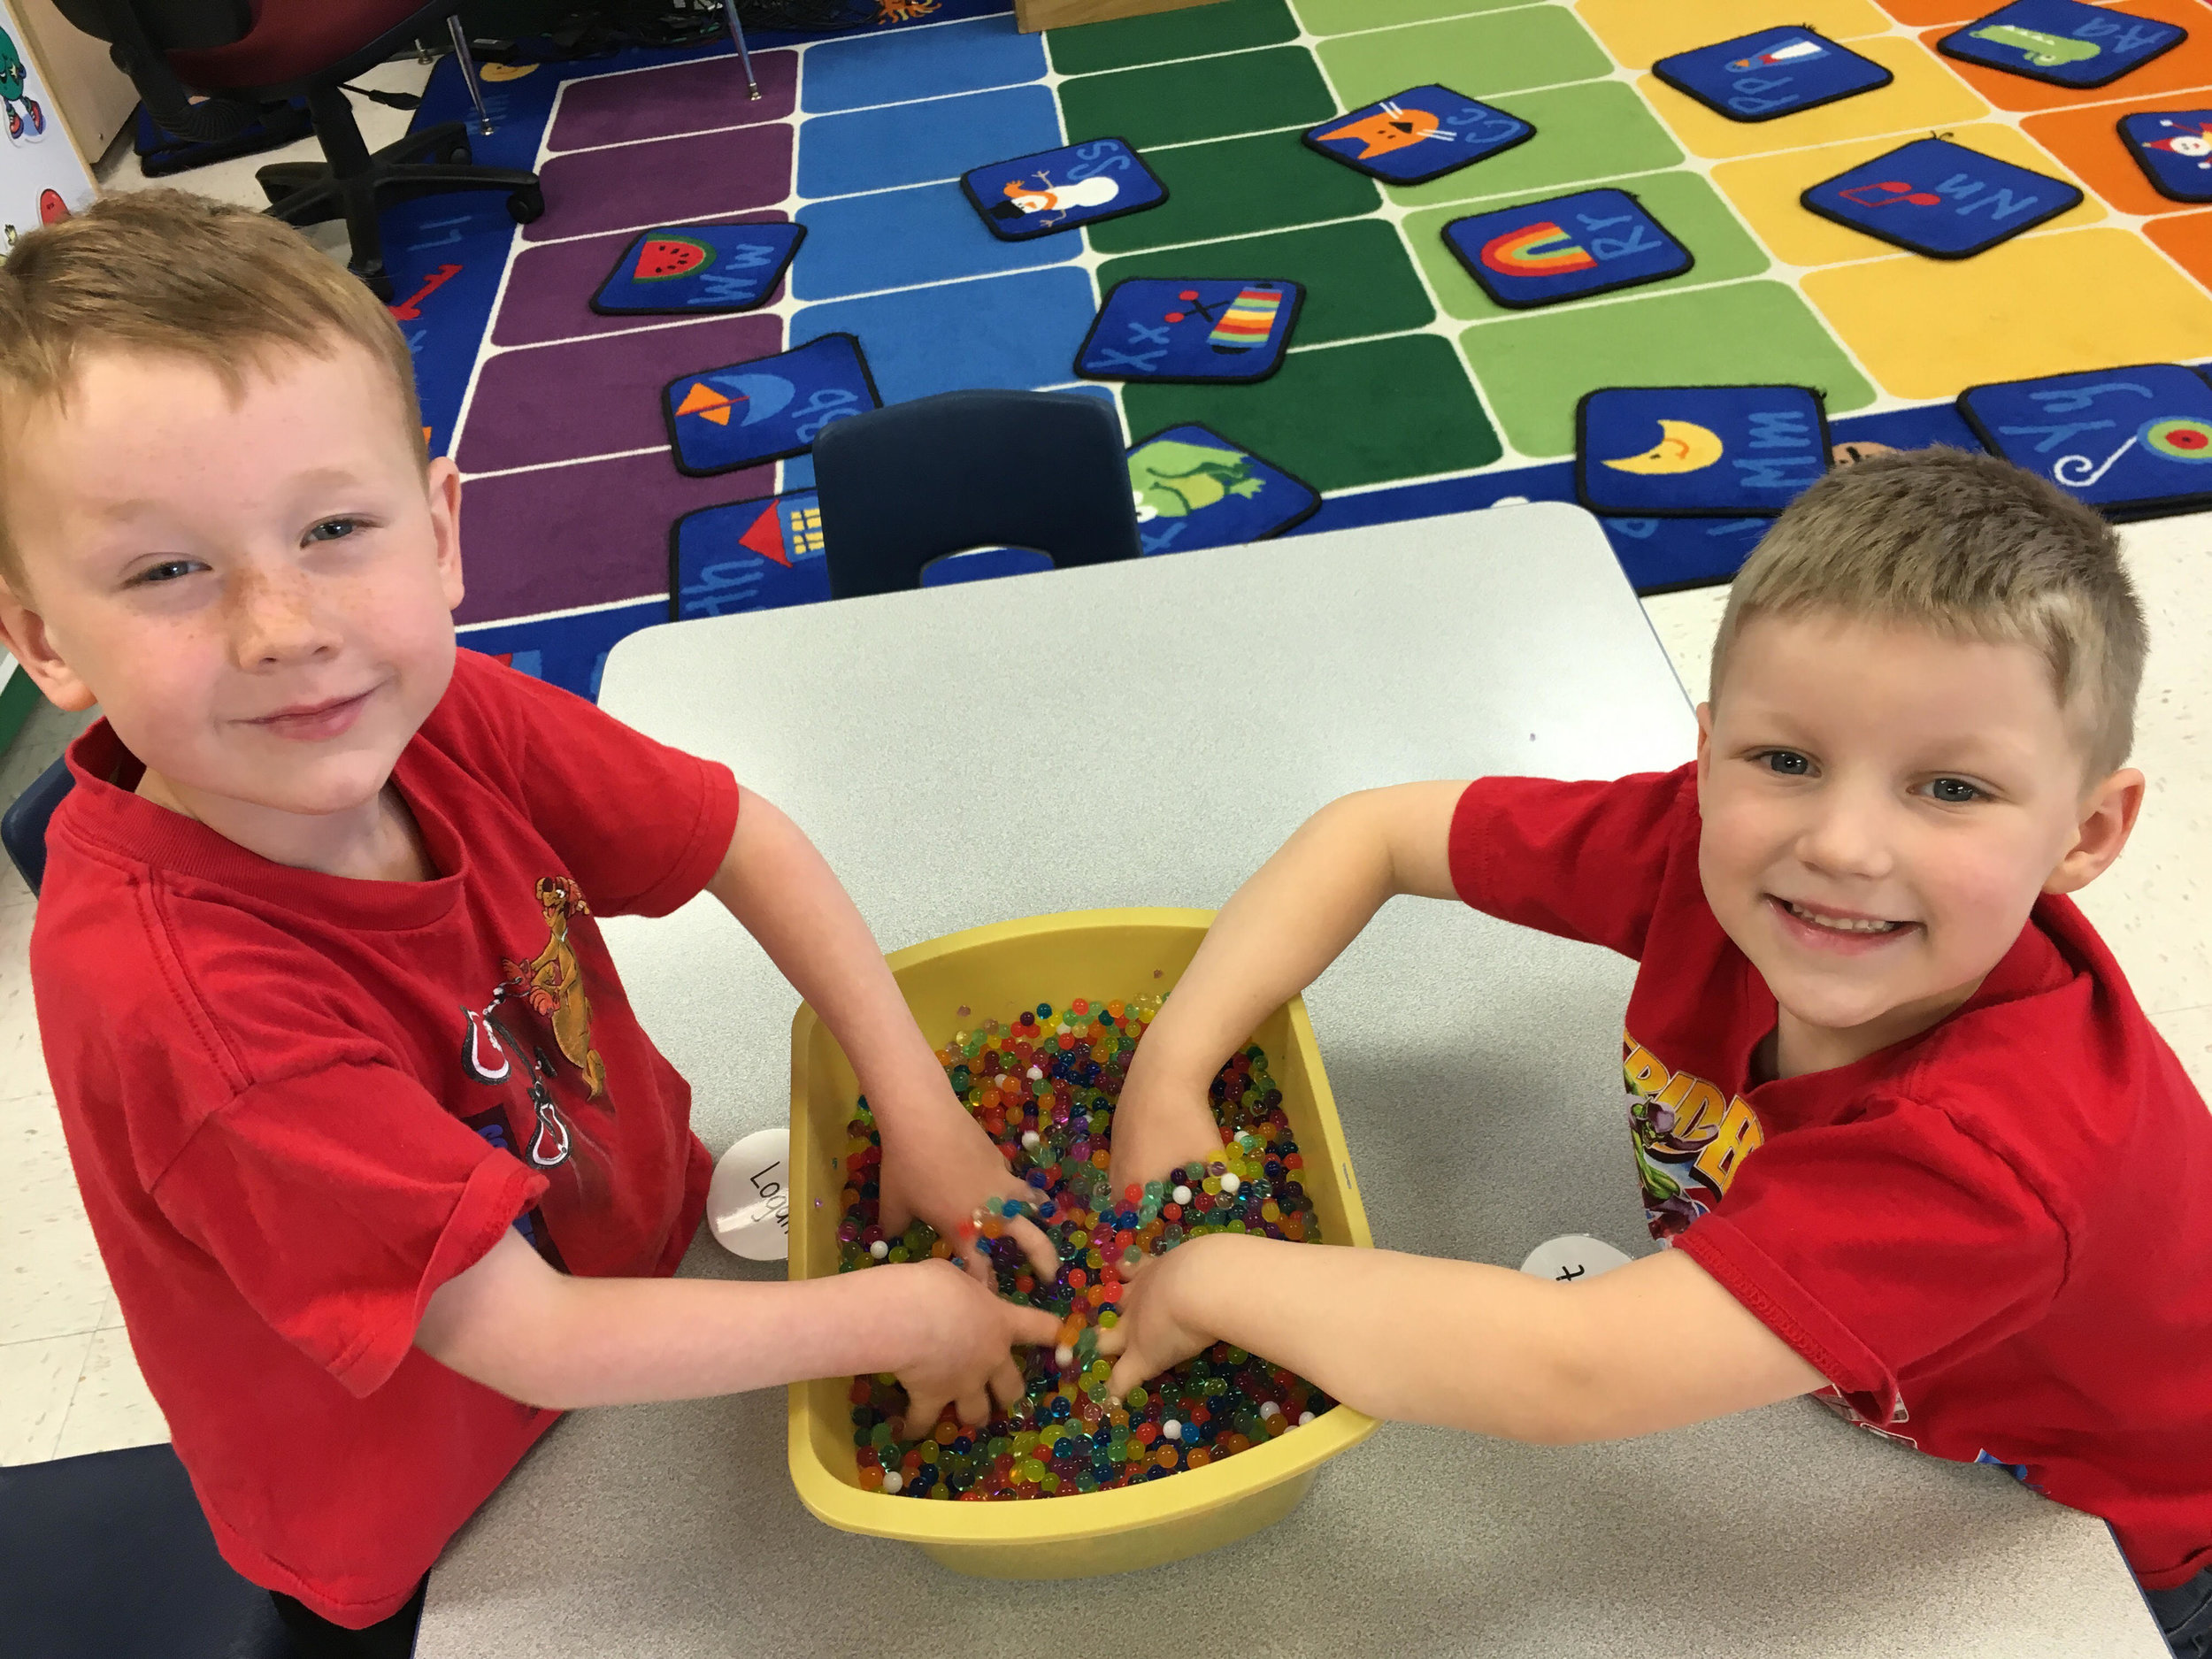 playing with water beads!